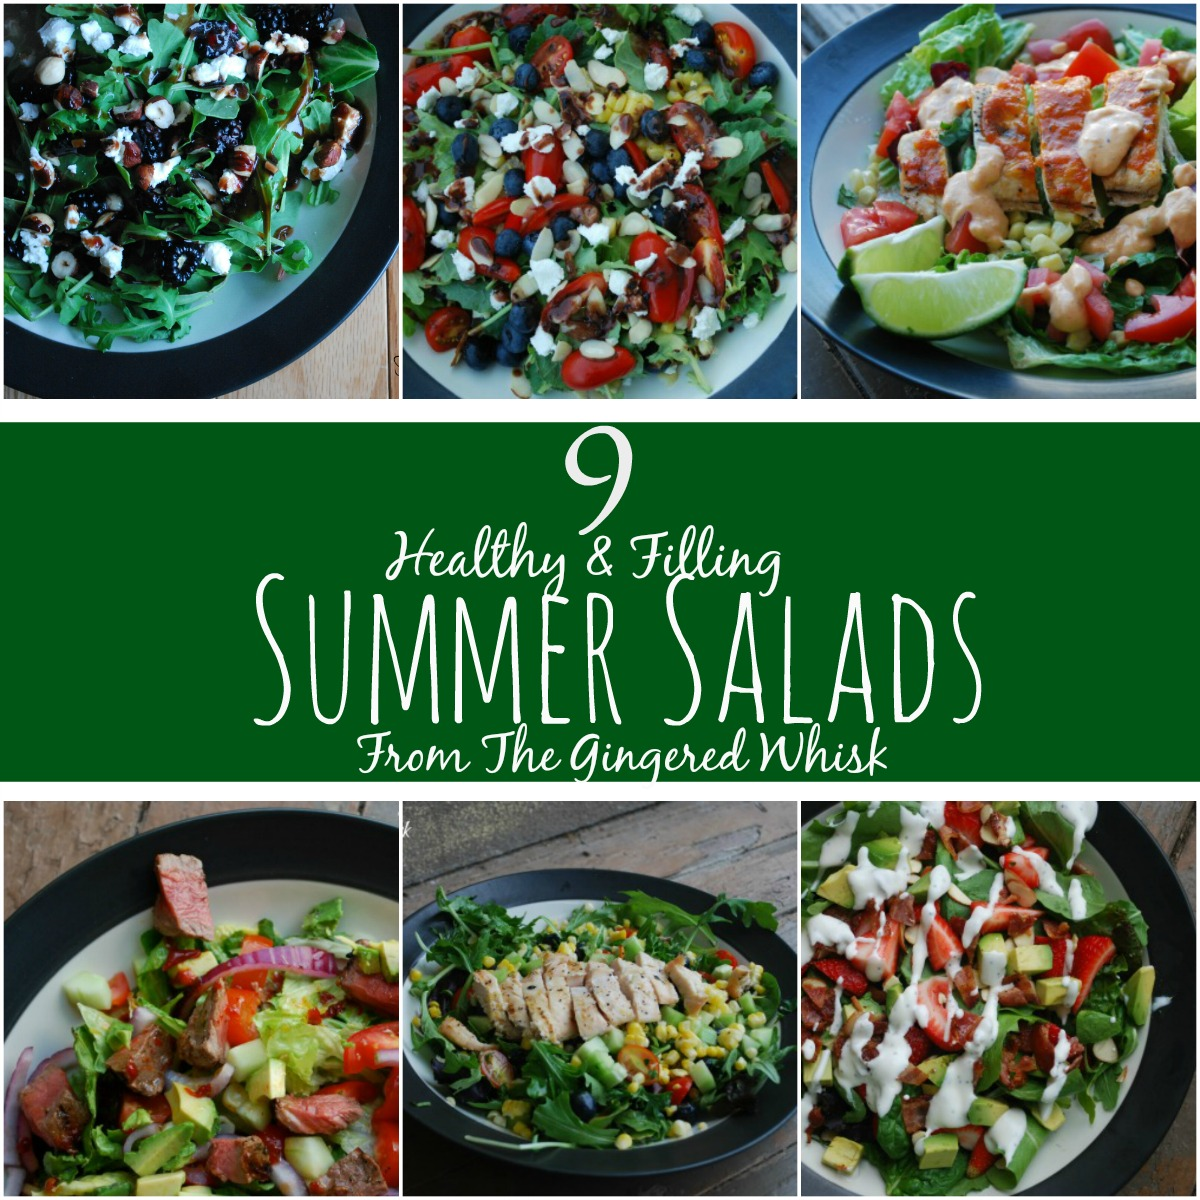 9 Delicious And Filling Summer Salad Recipes You Can Have